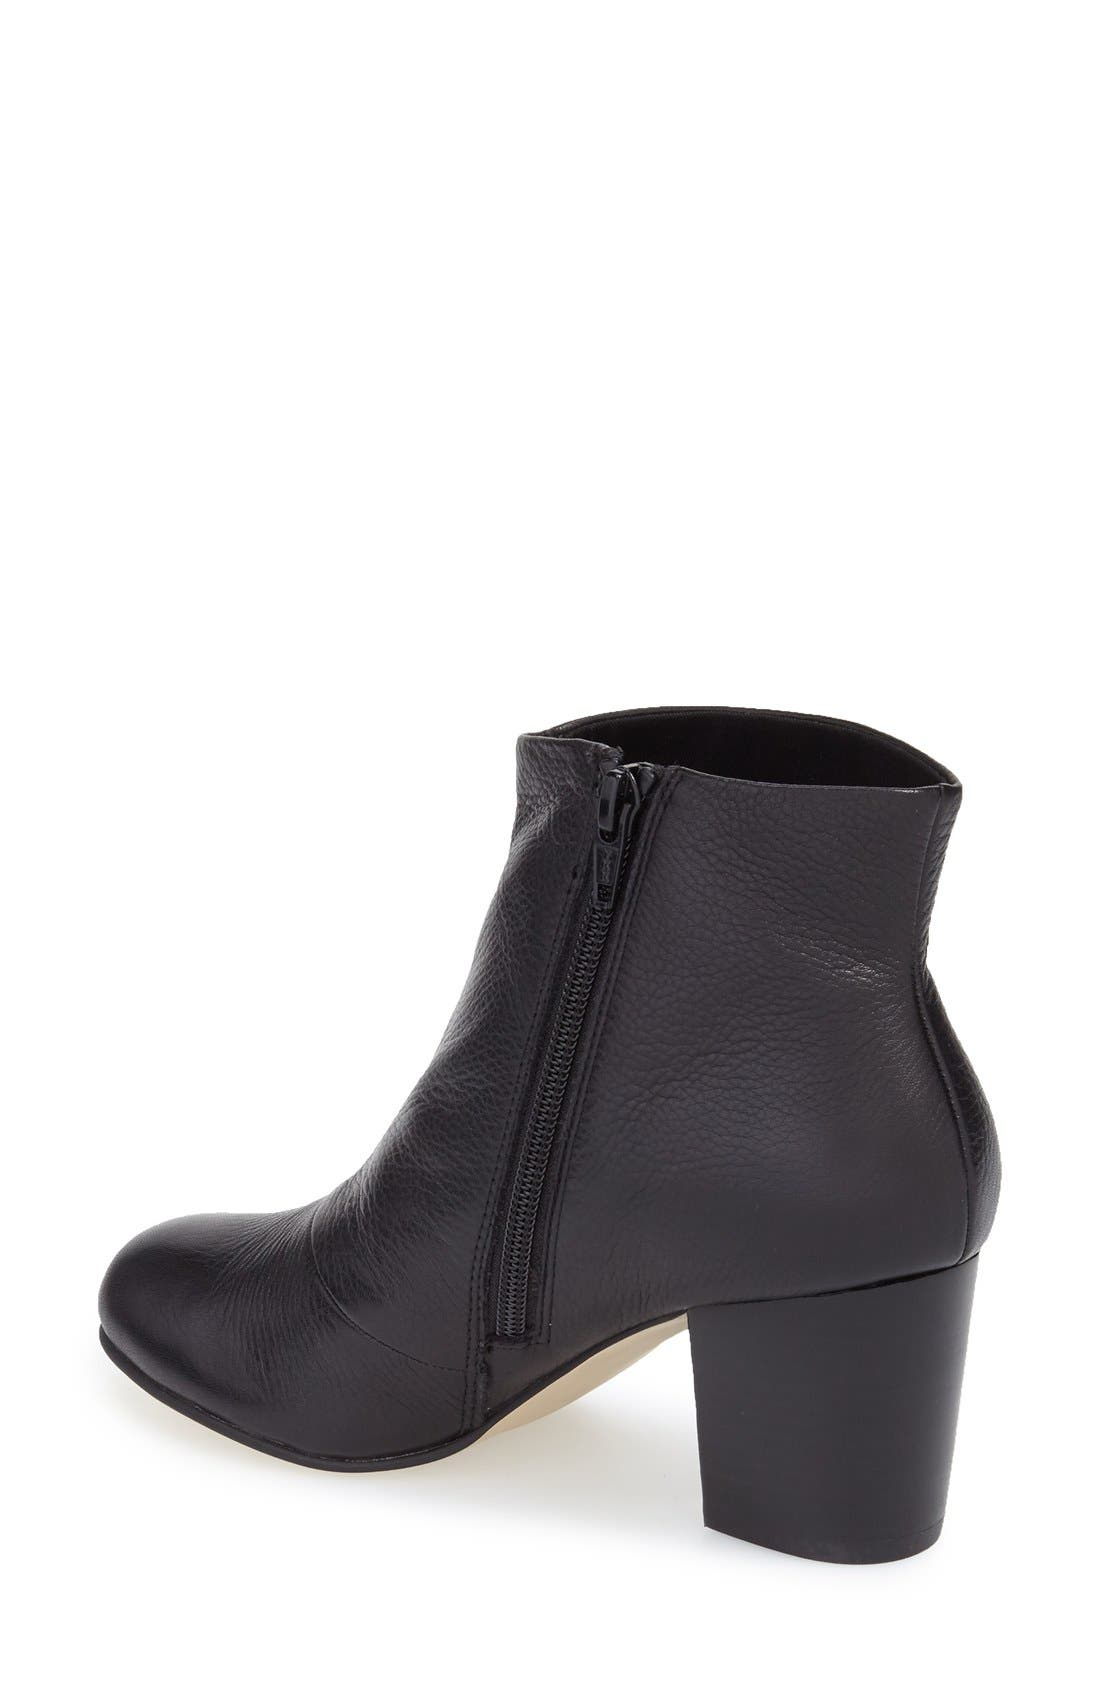 Alternate Image 2  - Sole Society 'Violette' Bootie (Women)